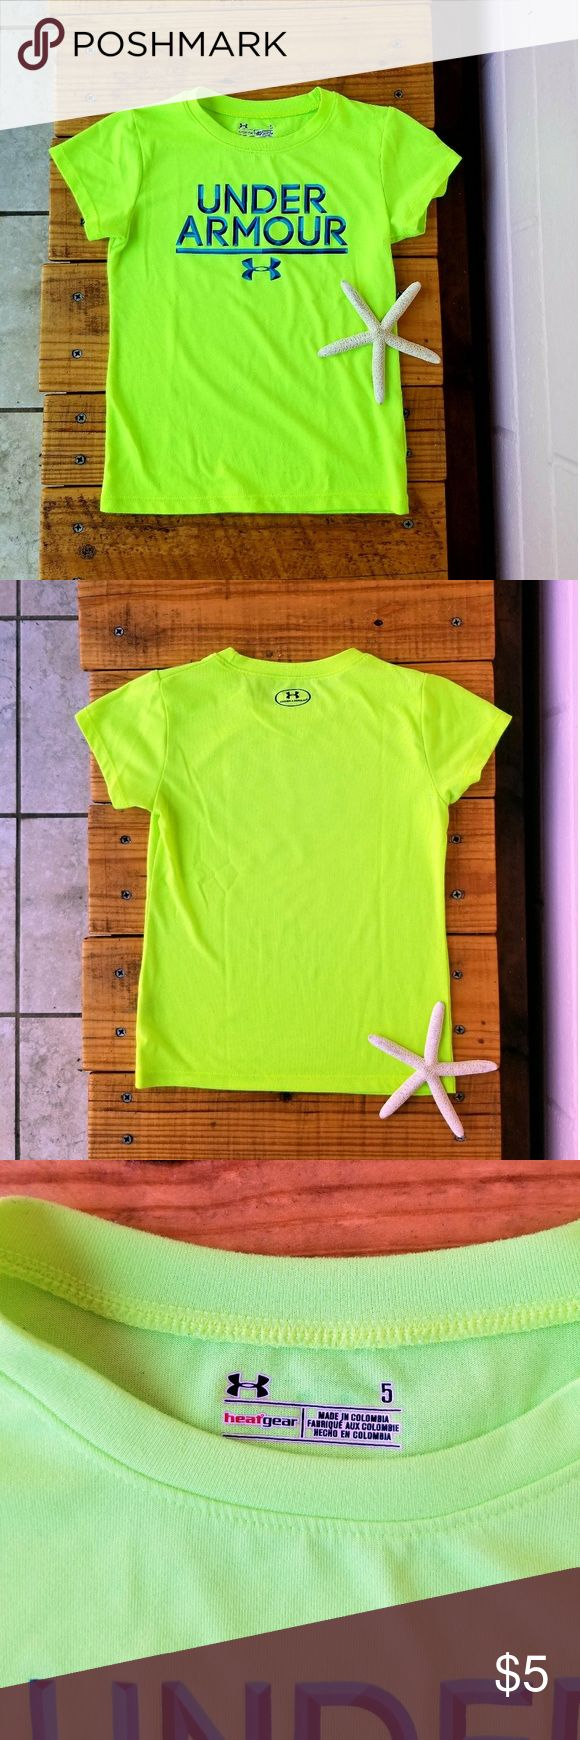 "under armour • tee About: •brand: Under Armour •size: 5t •color: neon green •short sleeves •stretchy material •100% polyester •euc with plenty of life left •comes from a smoke-FREE home  Measurements: •length: 17"" Under Armour Shirts & Tops Tees - Short Sleeve"